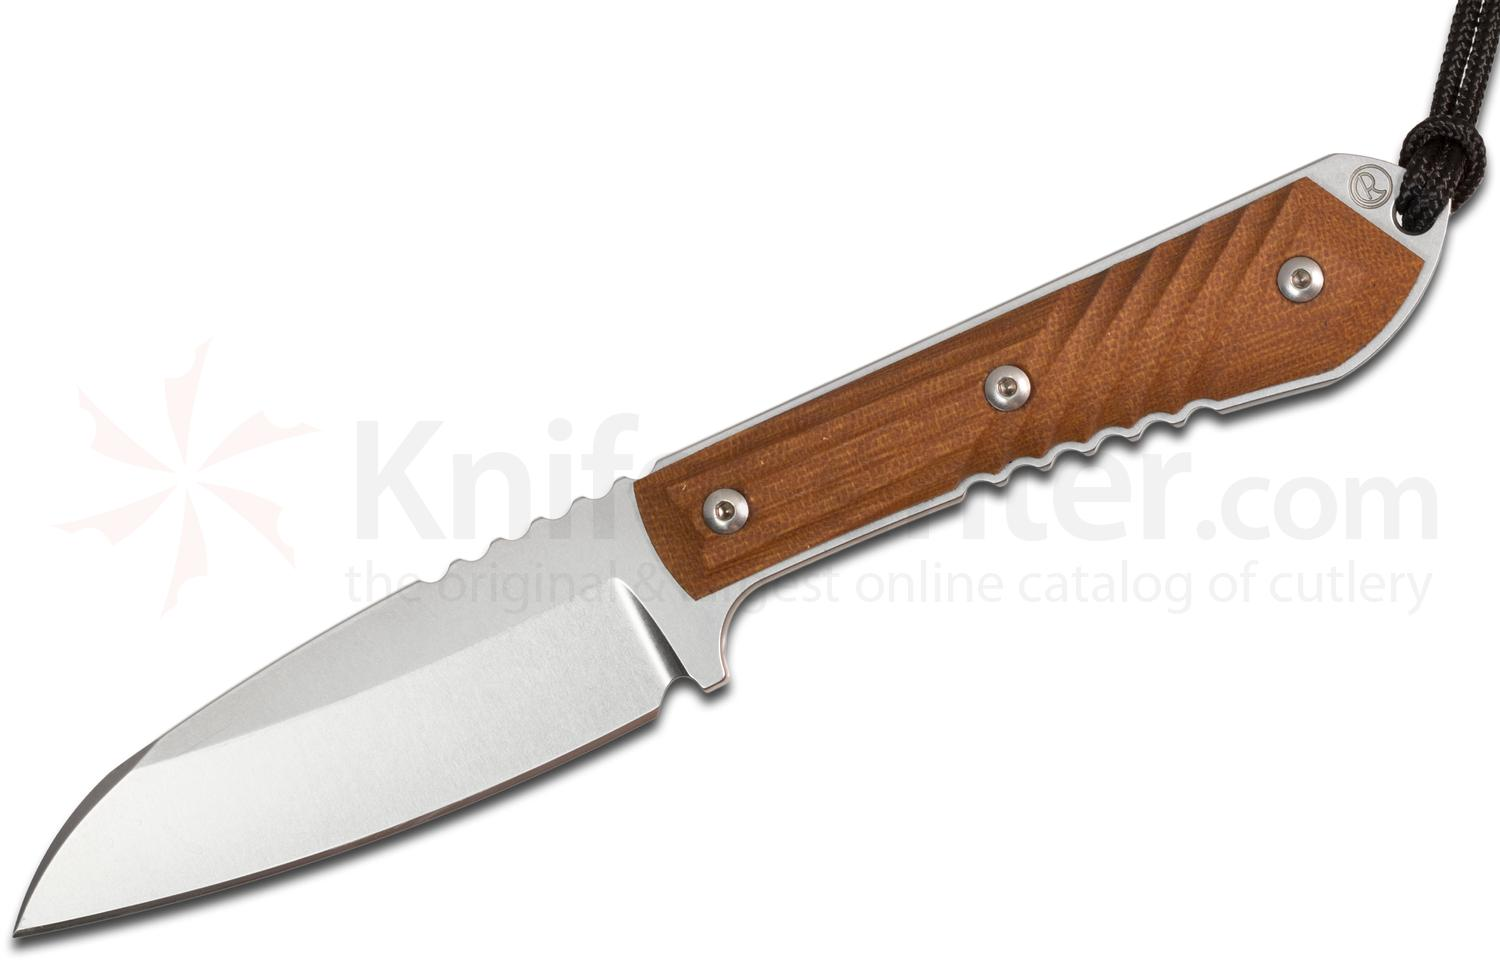 Chris Reeve Nyala Insingo Fixed 3.75 inch S35VN Stonewashed Blade, Brown Canvas Micarta Handles, Leather Sheath